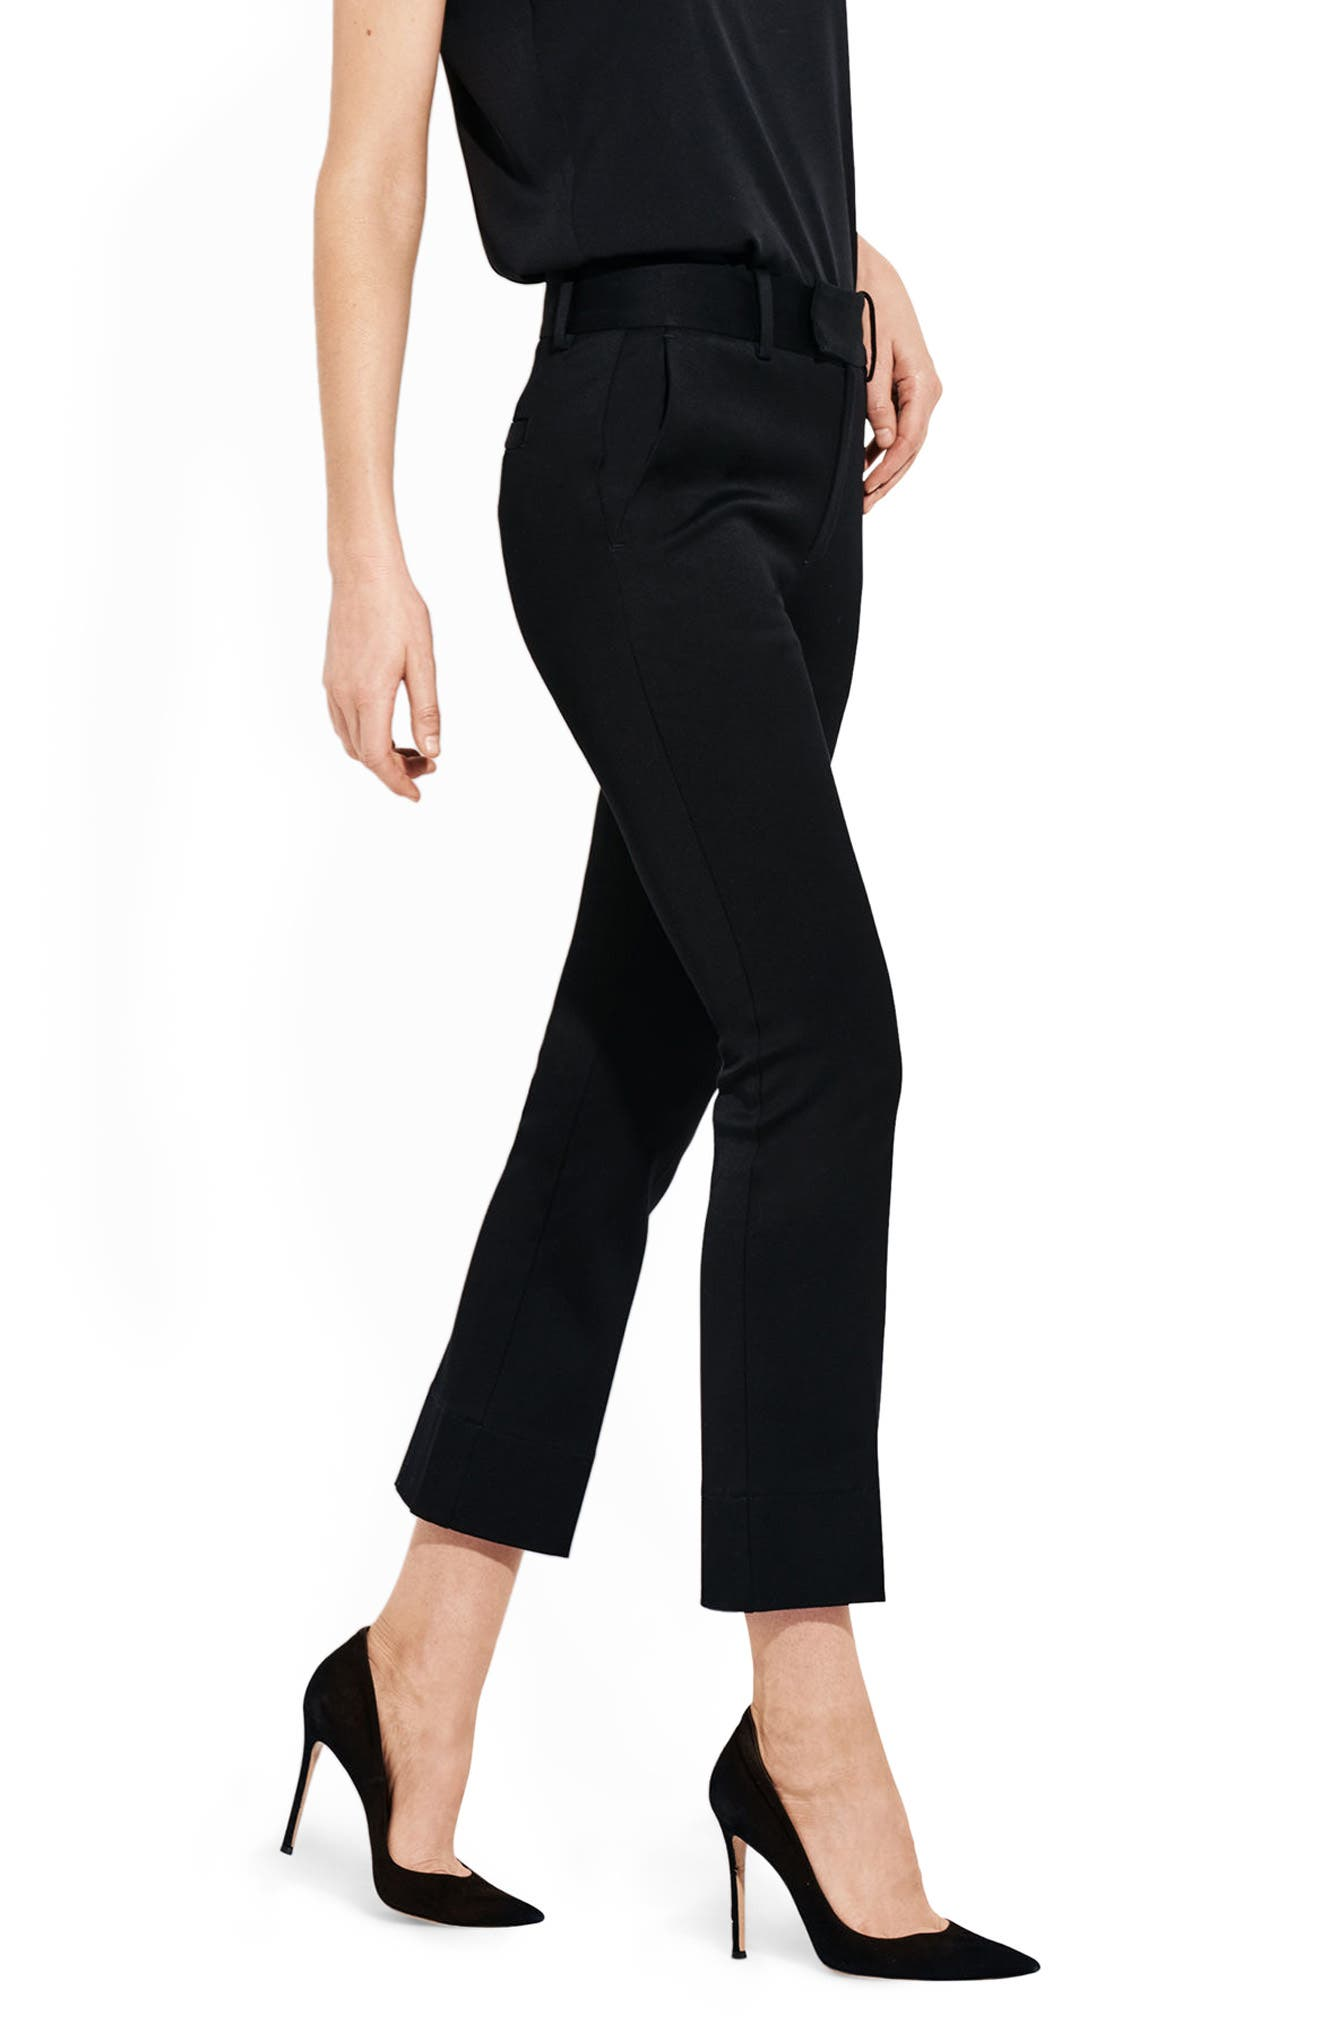 Alternate Image 1 Selected - AYR The Vault High Waist Ankle Bootcut Jeans